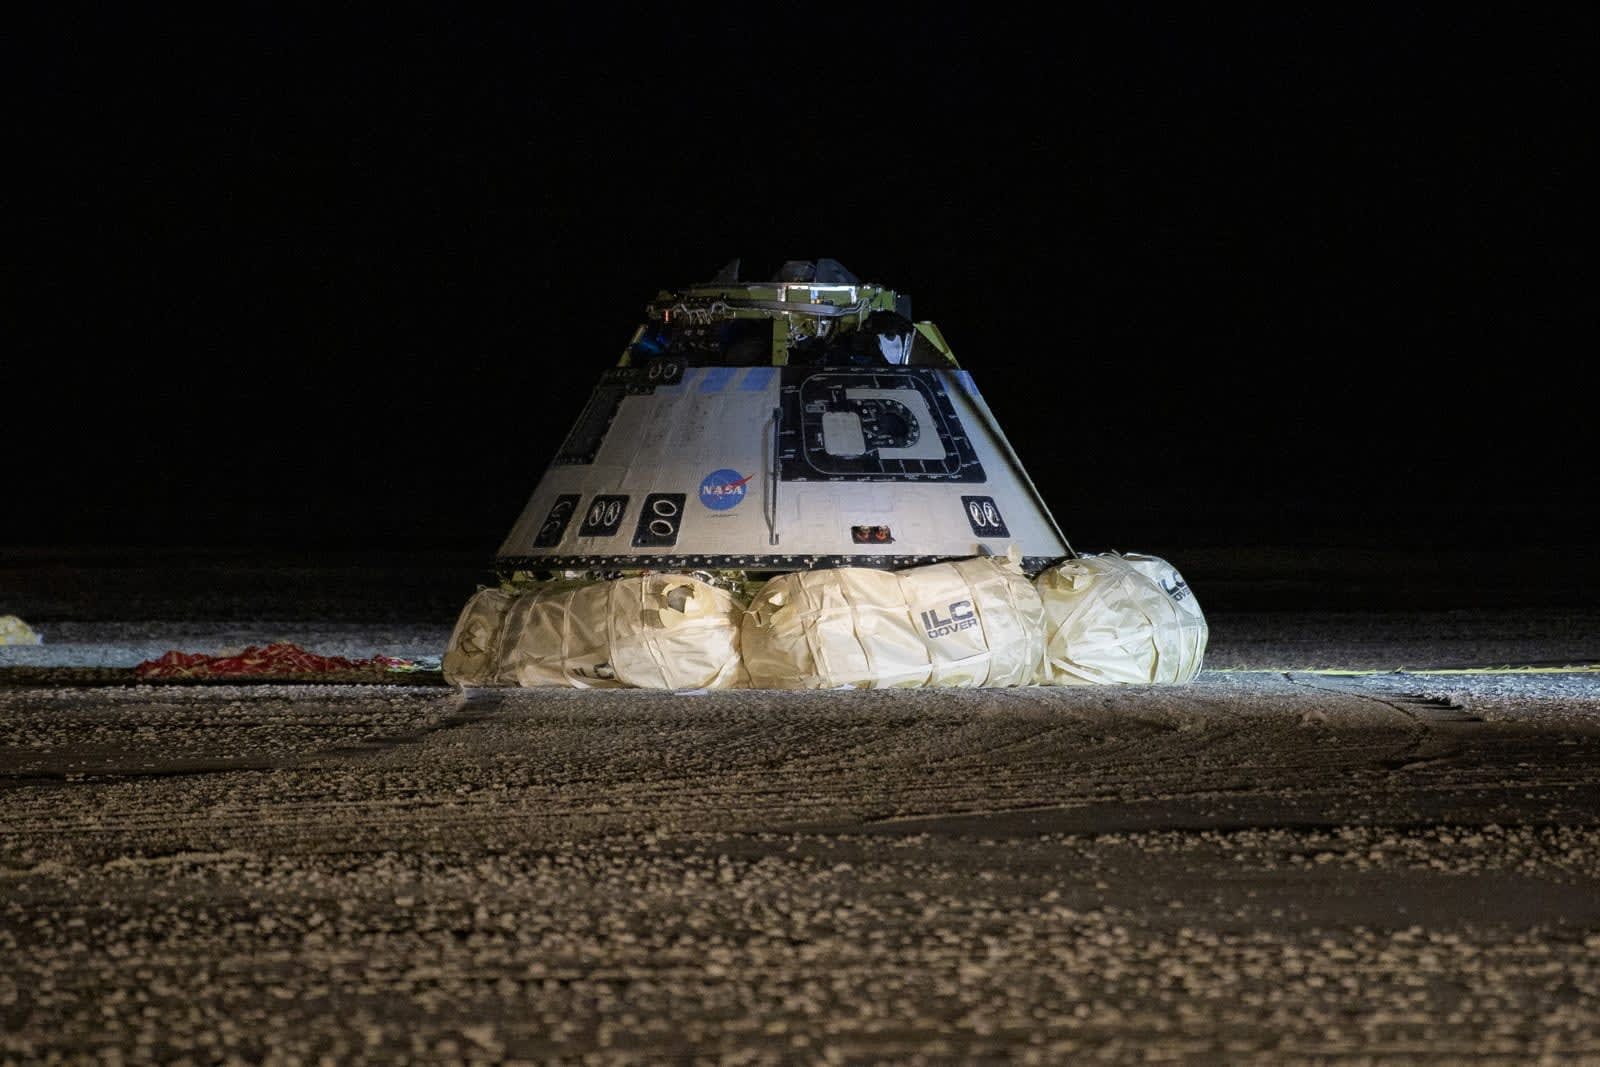 Boeing Starliner is the first US-made crew capsule to land on the ground